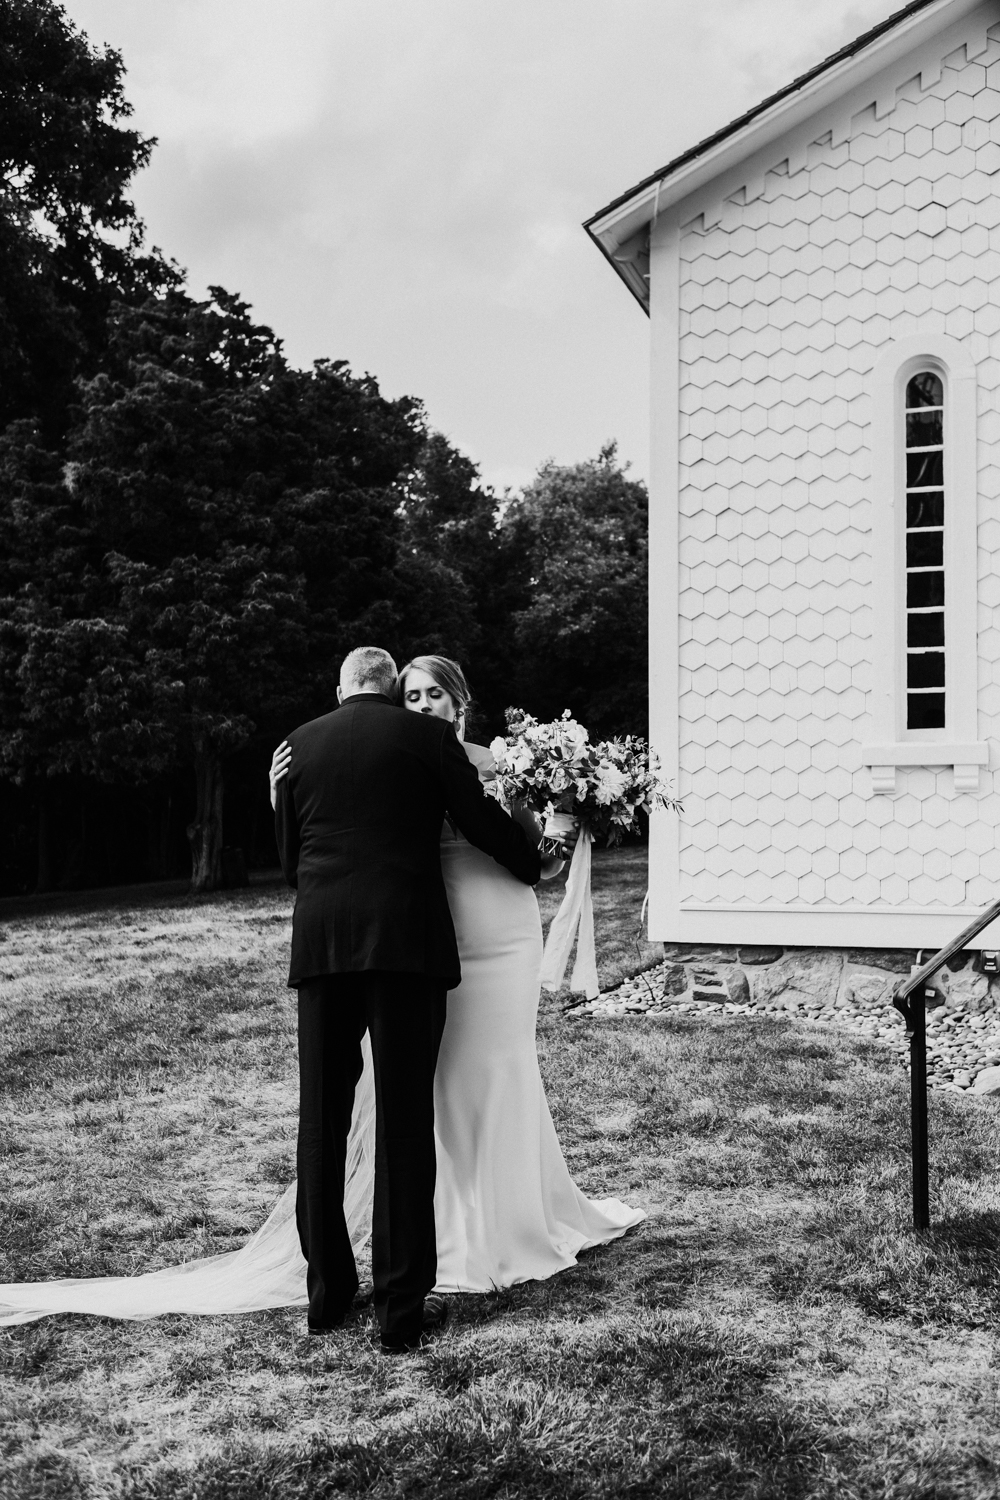 Wedding_Francis_Boucher_Photography_Aldrich_Mansion_2018-41.jpg